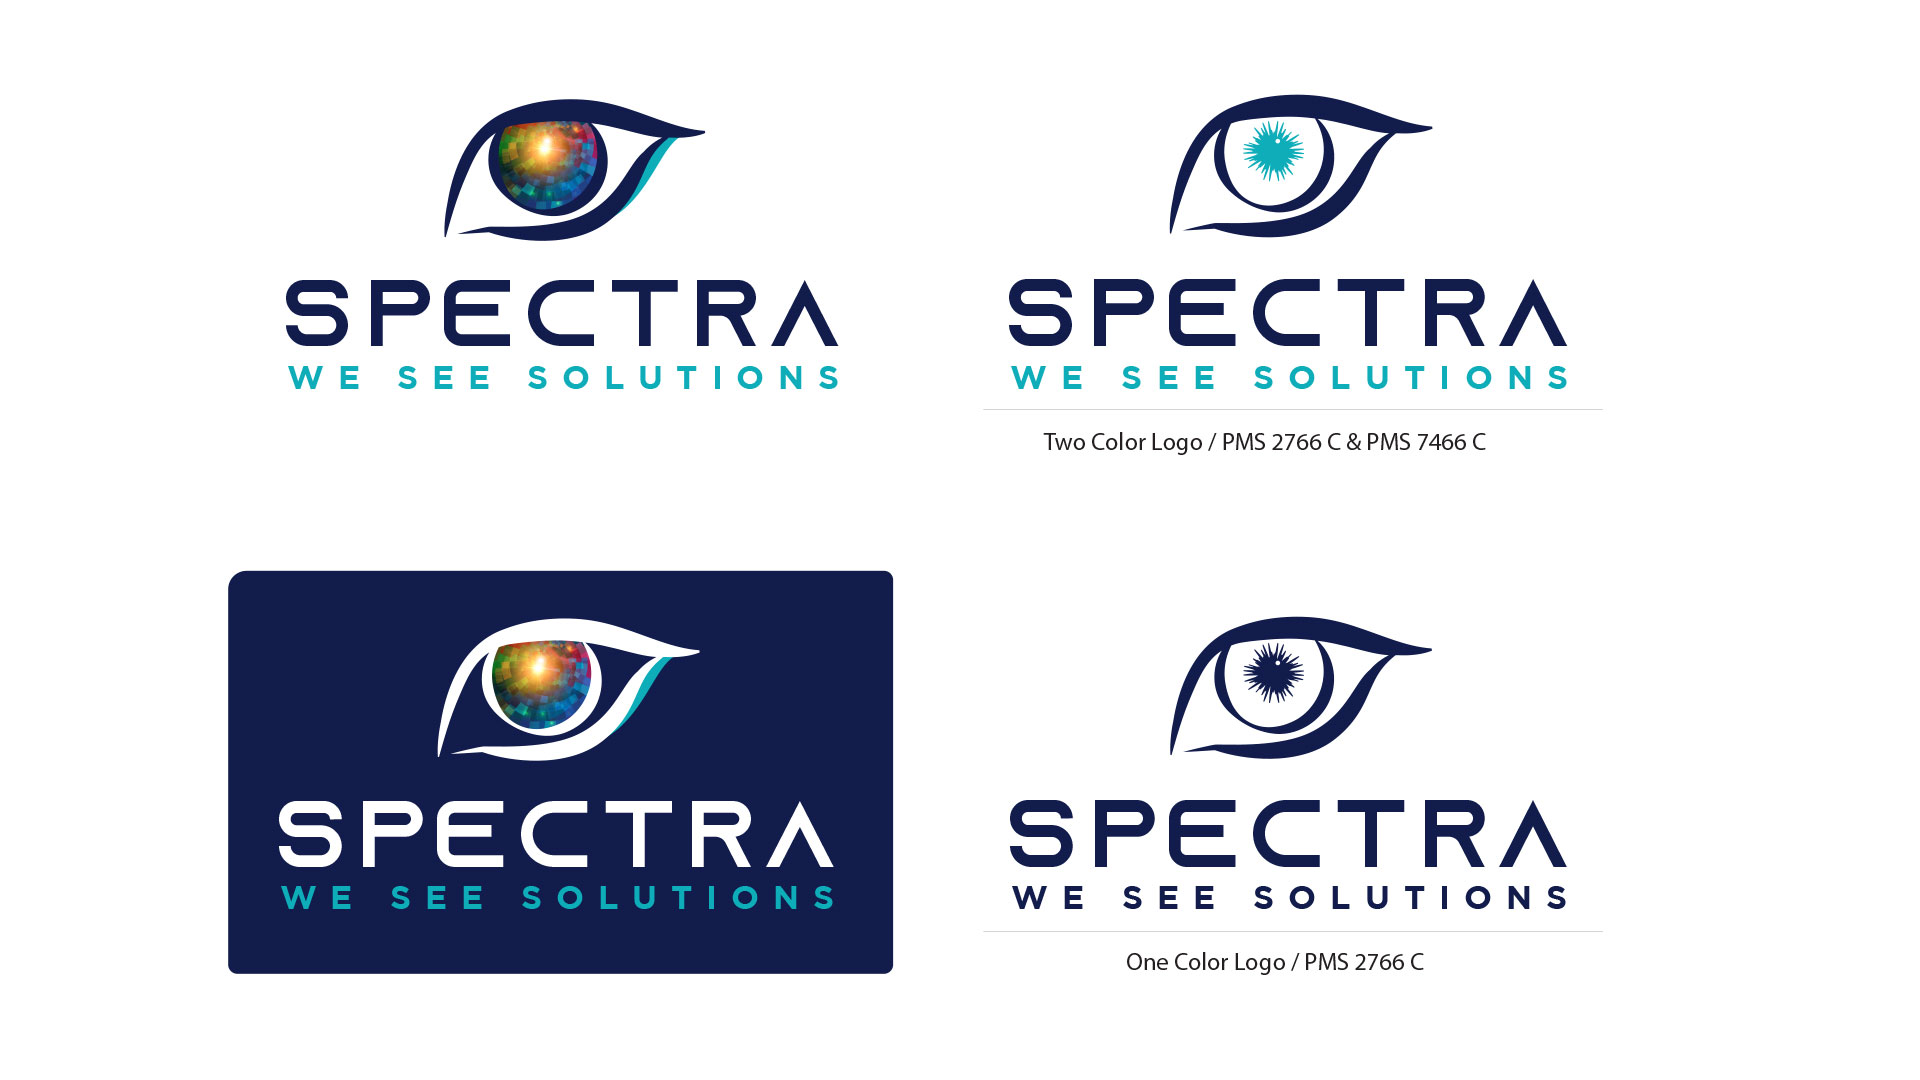 Spectra logos for all printing requirements